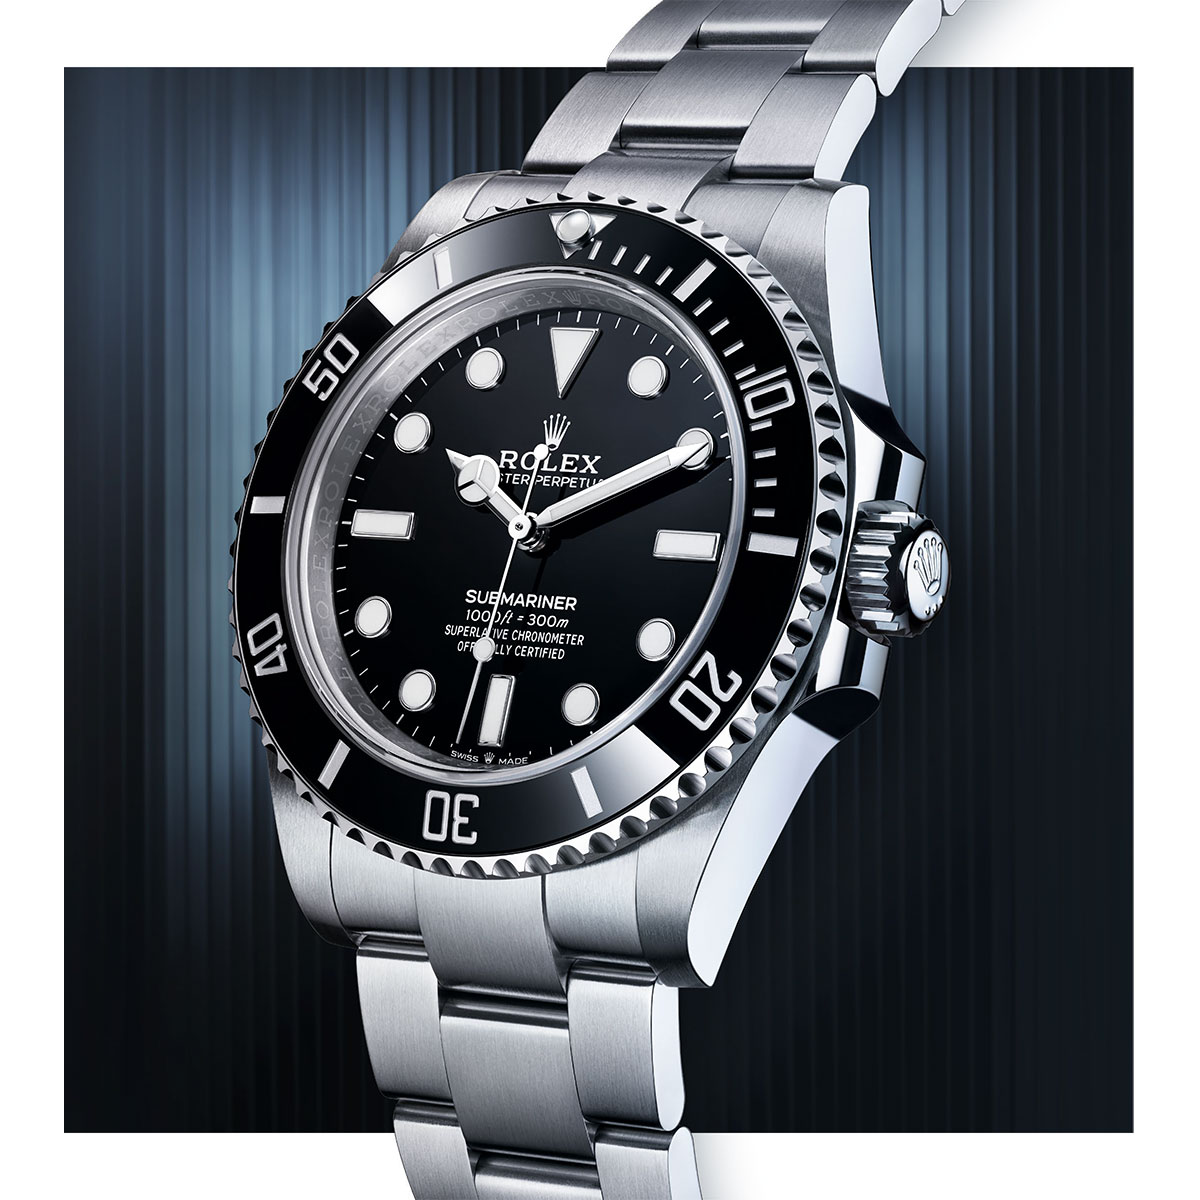 Đồng hồ Rolex Oyster Perpetual Submariner và Oyster Perpetual Submariner Date